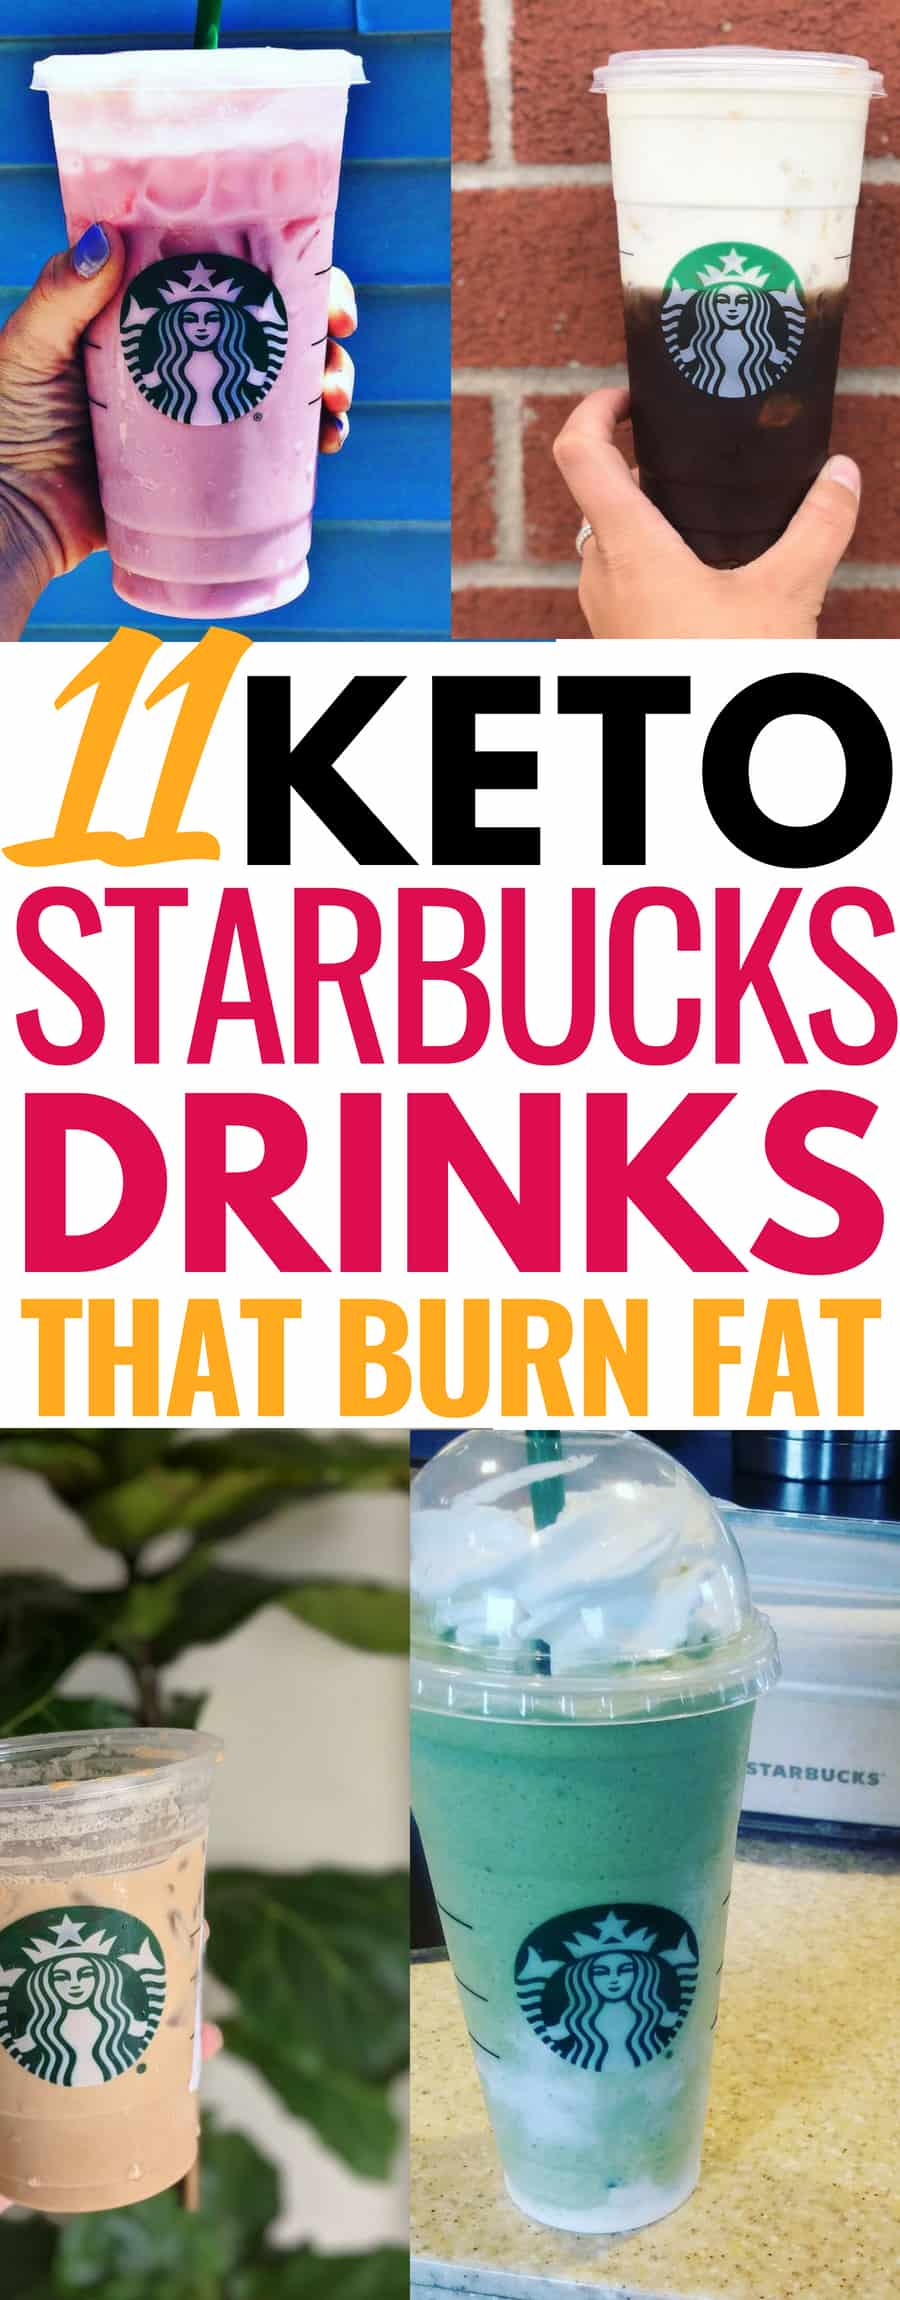 These keto Starbucks drinks are THE BEST! Plus they're perfect for keeping me burning fat on the low carb diet. I'm so glad I found these keto Starbucks fat burning drinks. Now I can truly enjoy my self guilt free when I choose to go to Starbucks! definitely pinning this for later #keto #ketodiet #ketogenic #lchf